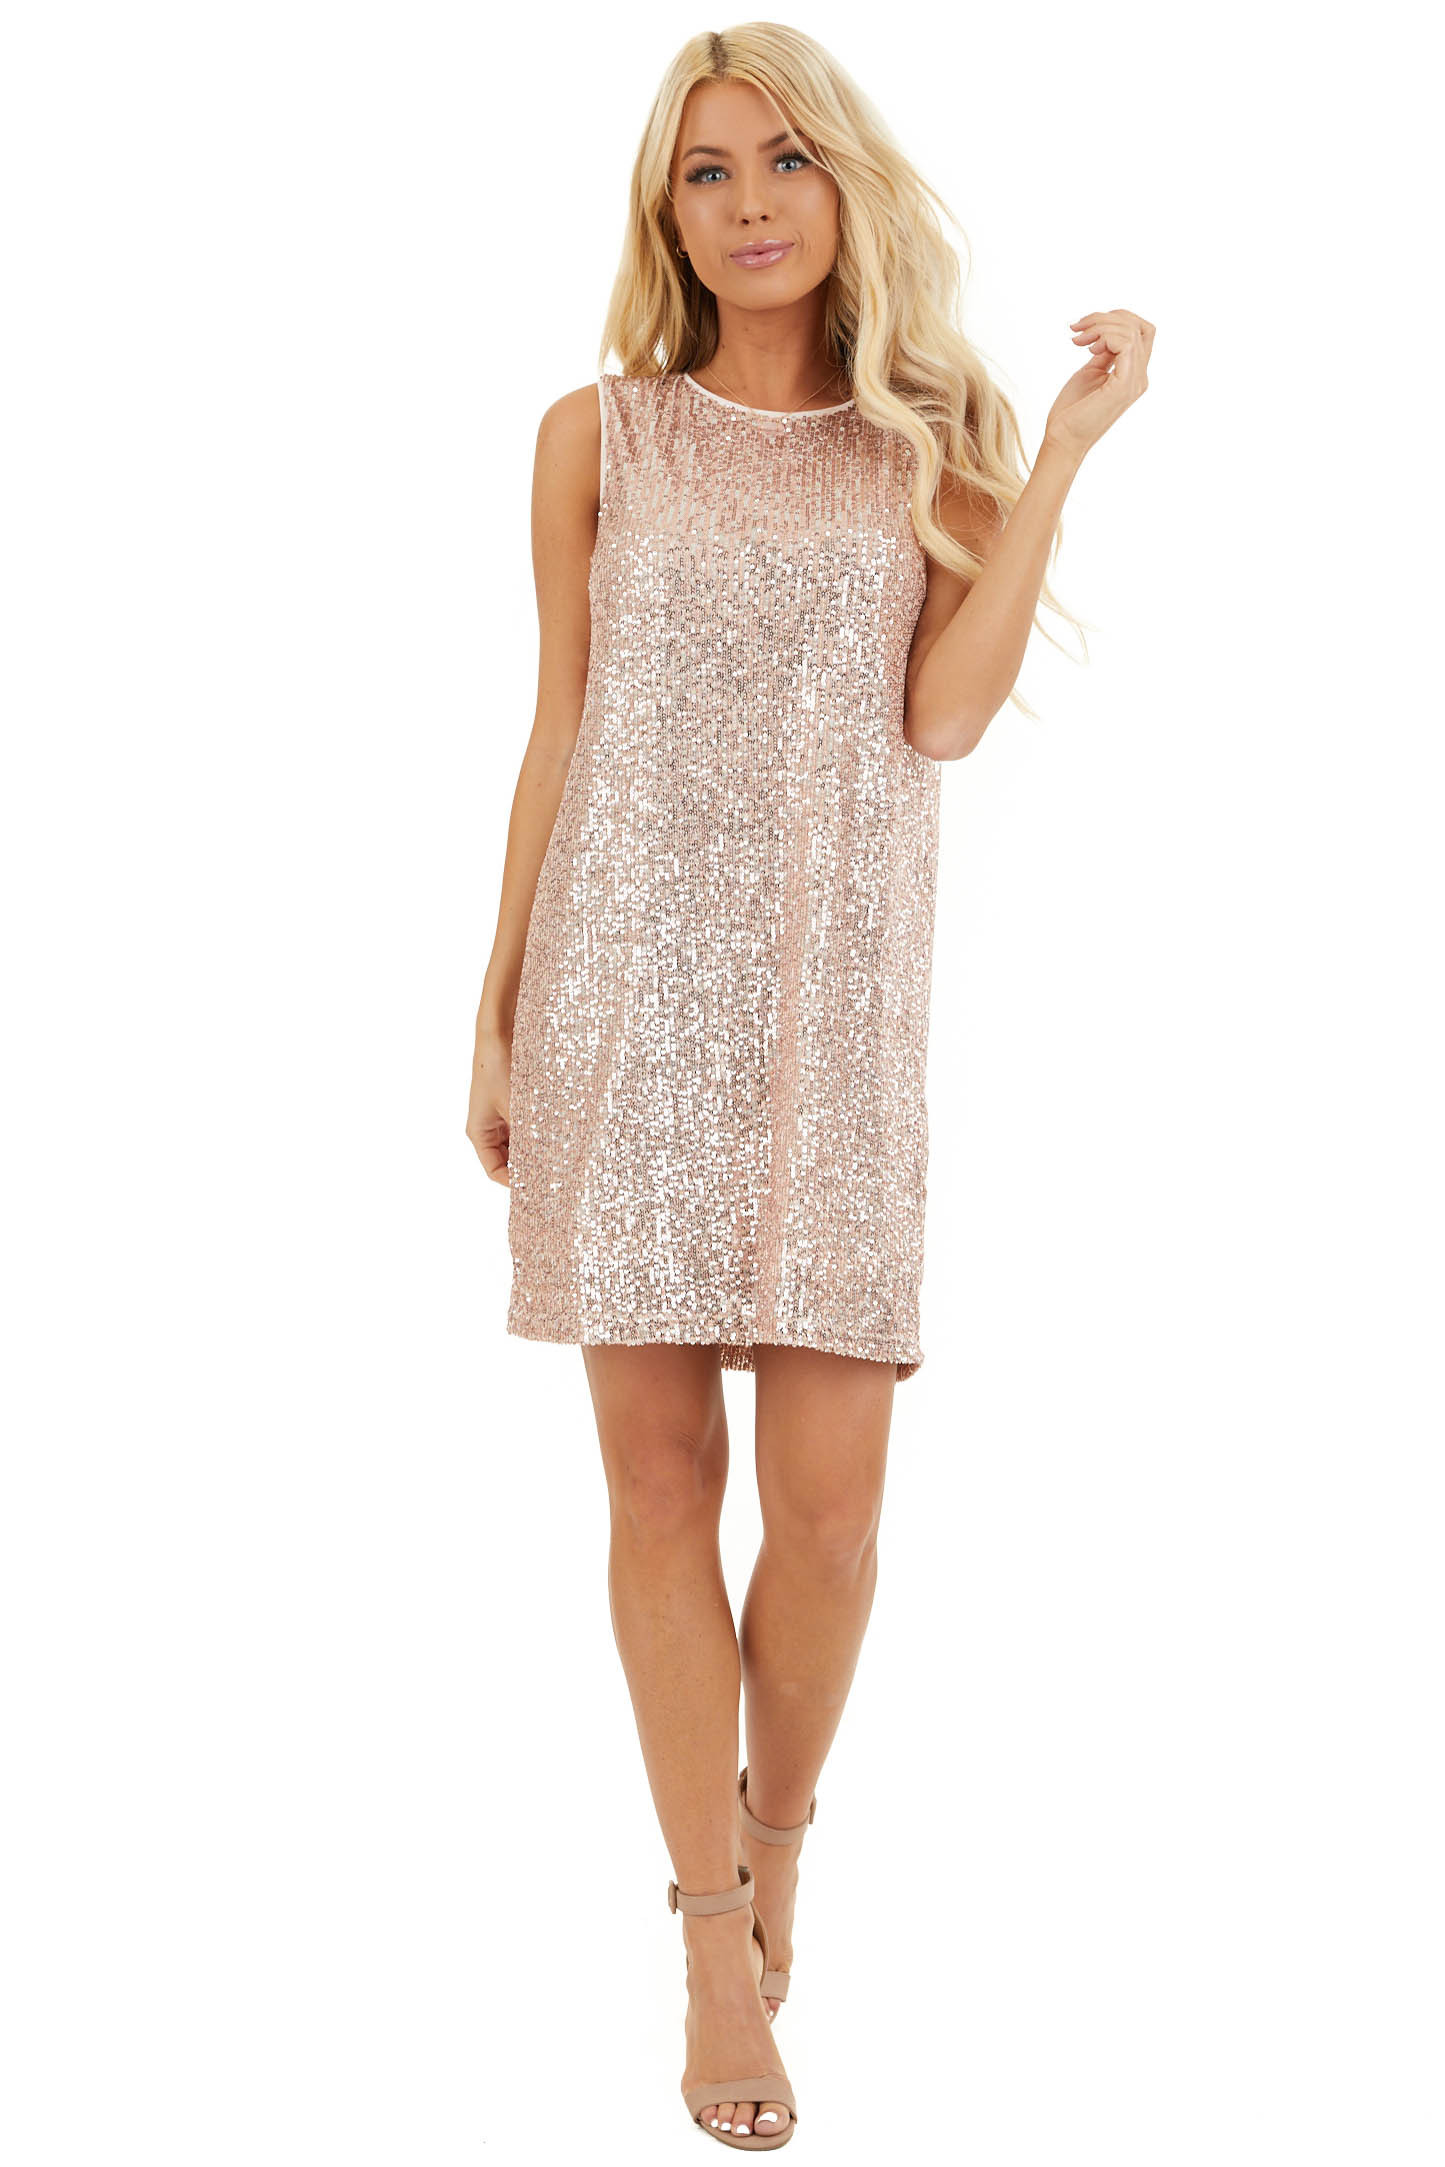 Blush Sequin Sleeveless Mini Dress with Back Keyhole Closure front full body